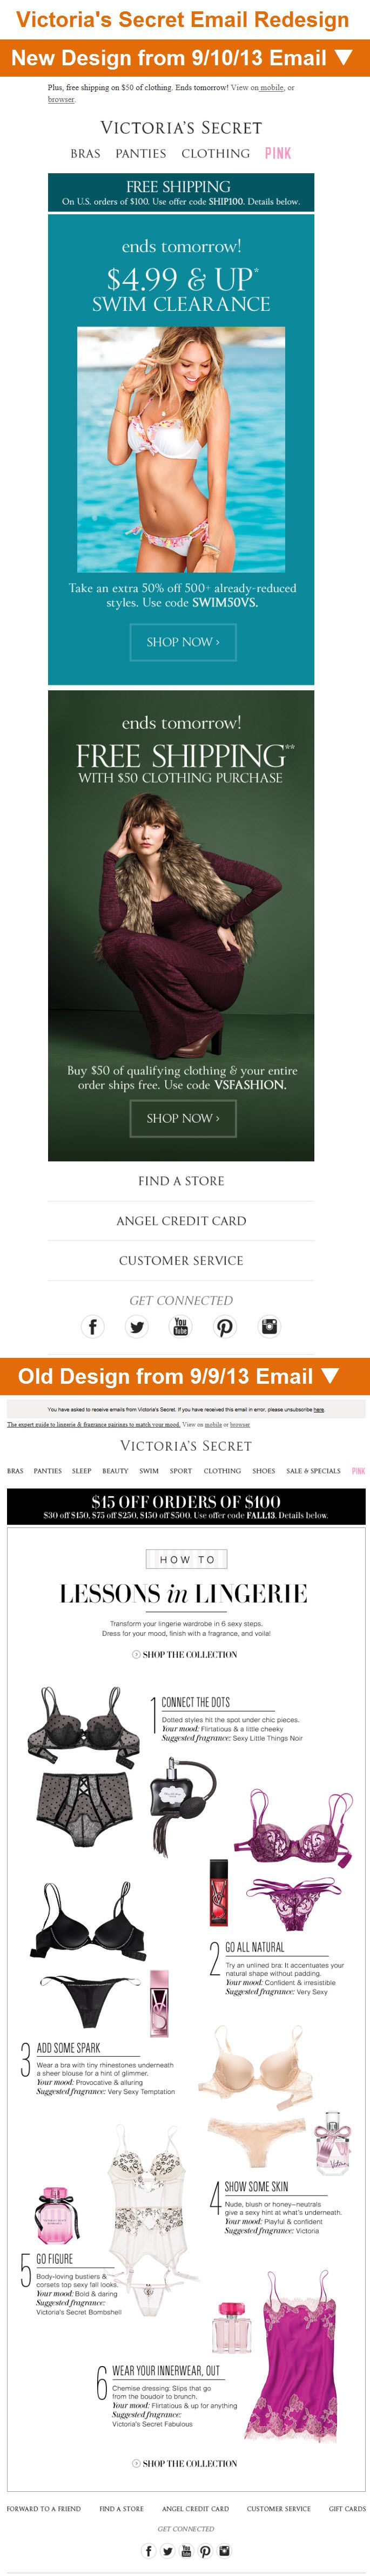 Best Email Survey Images On   Email Design Email